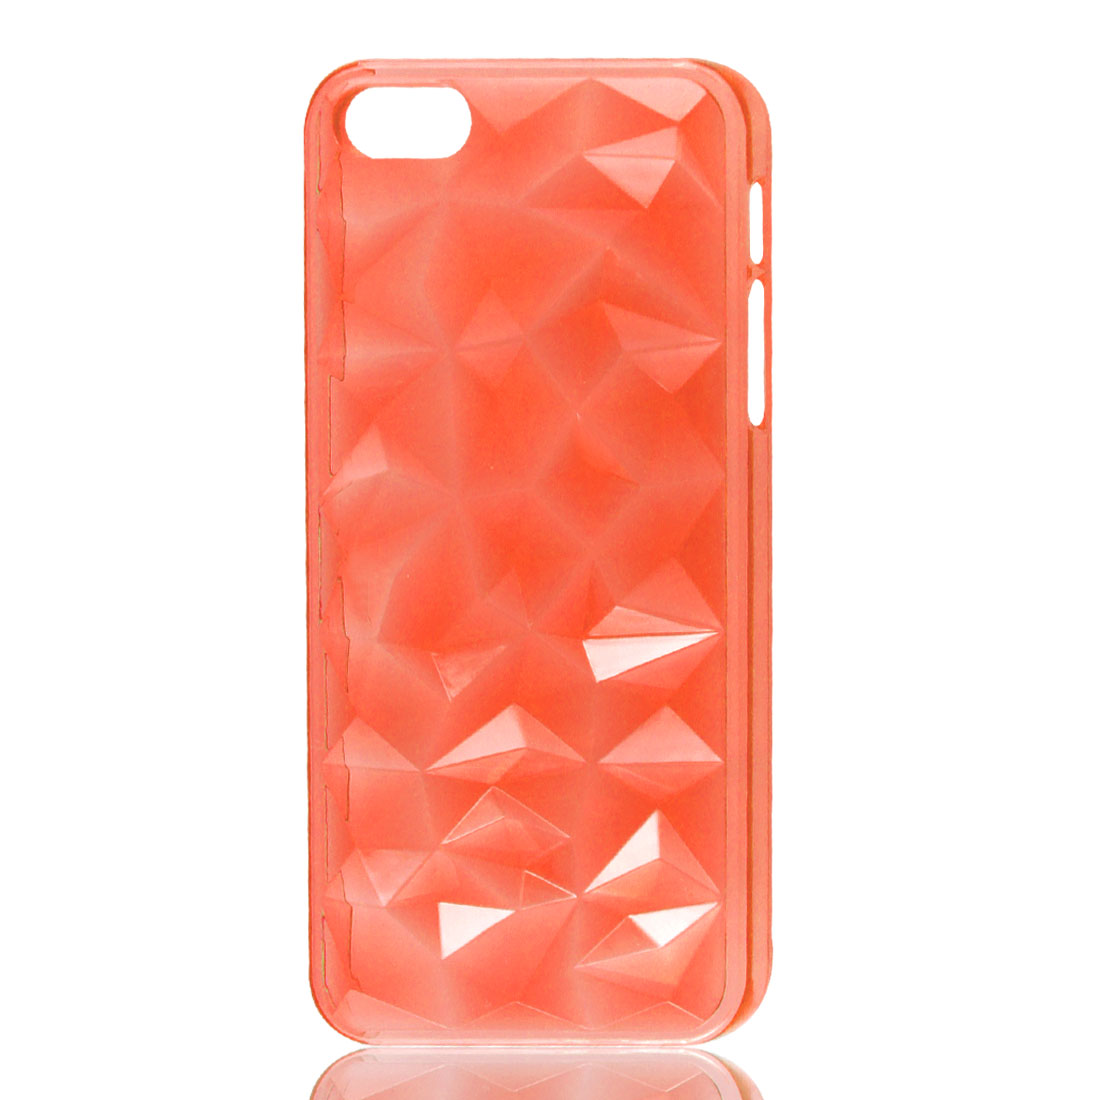 Orangered 3D Water Cube Hard Back Case Cover for iPhone 5 5G 5th